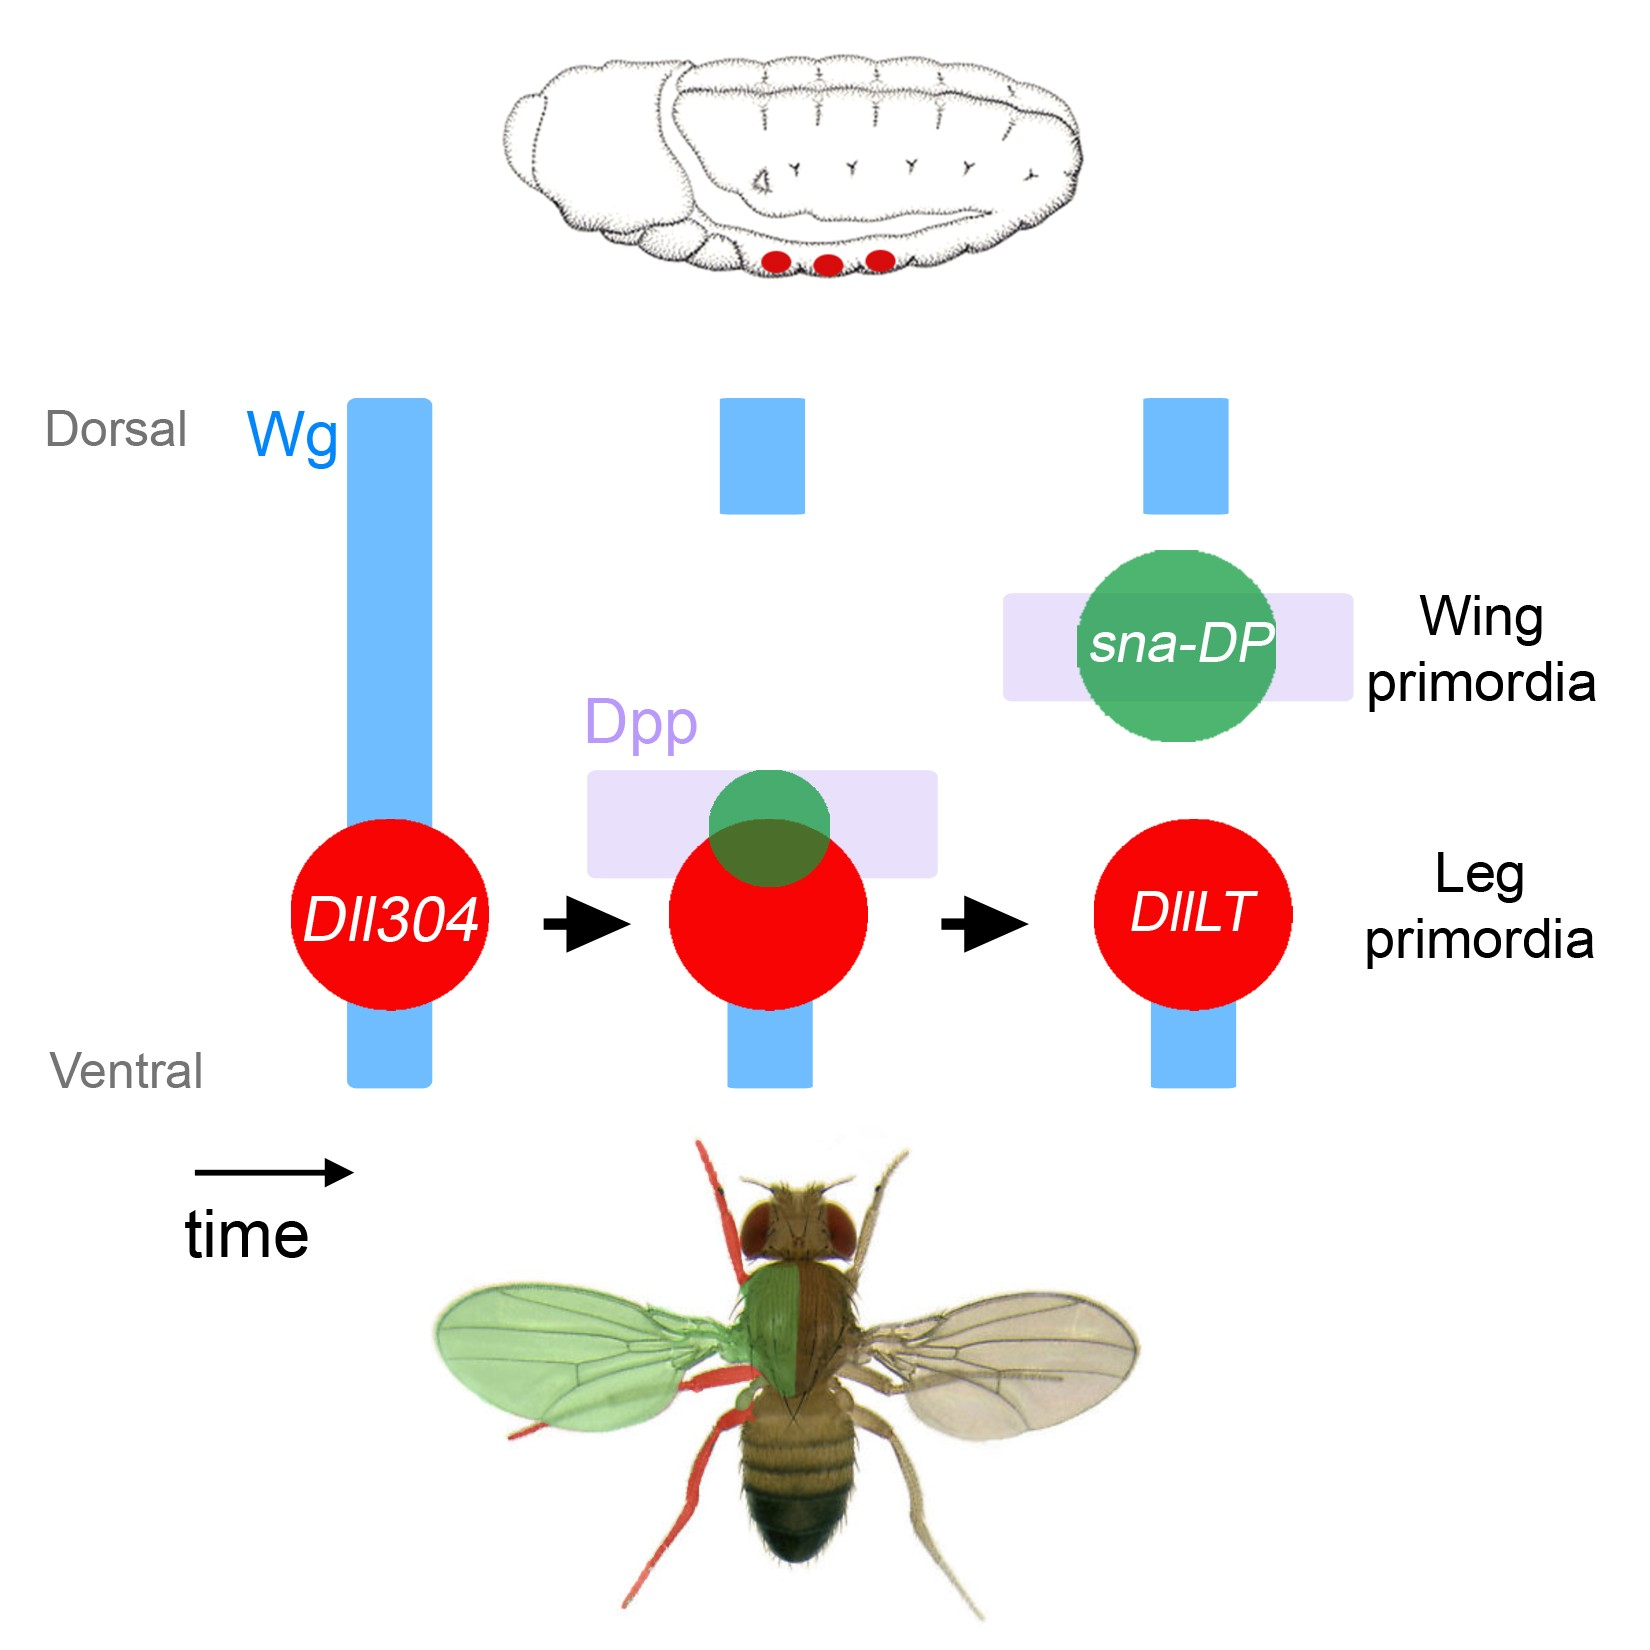 Where did insect wings come from?